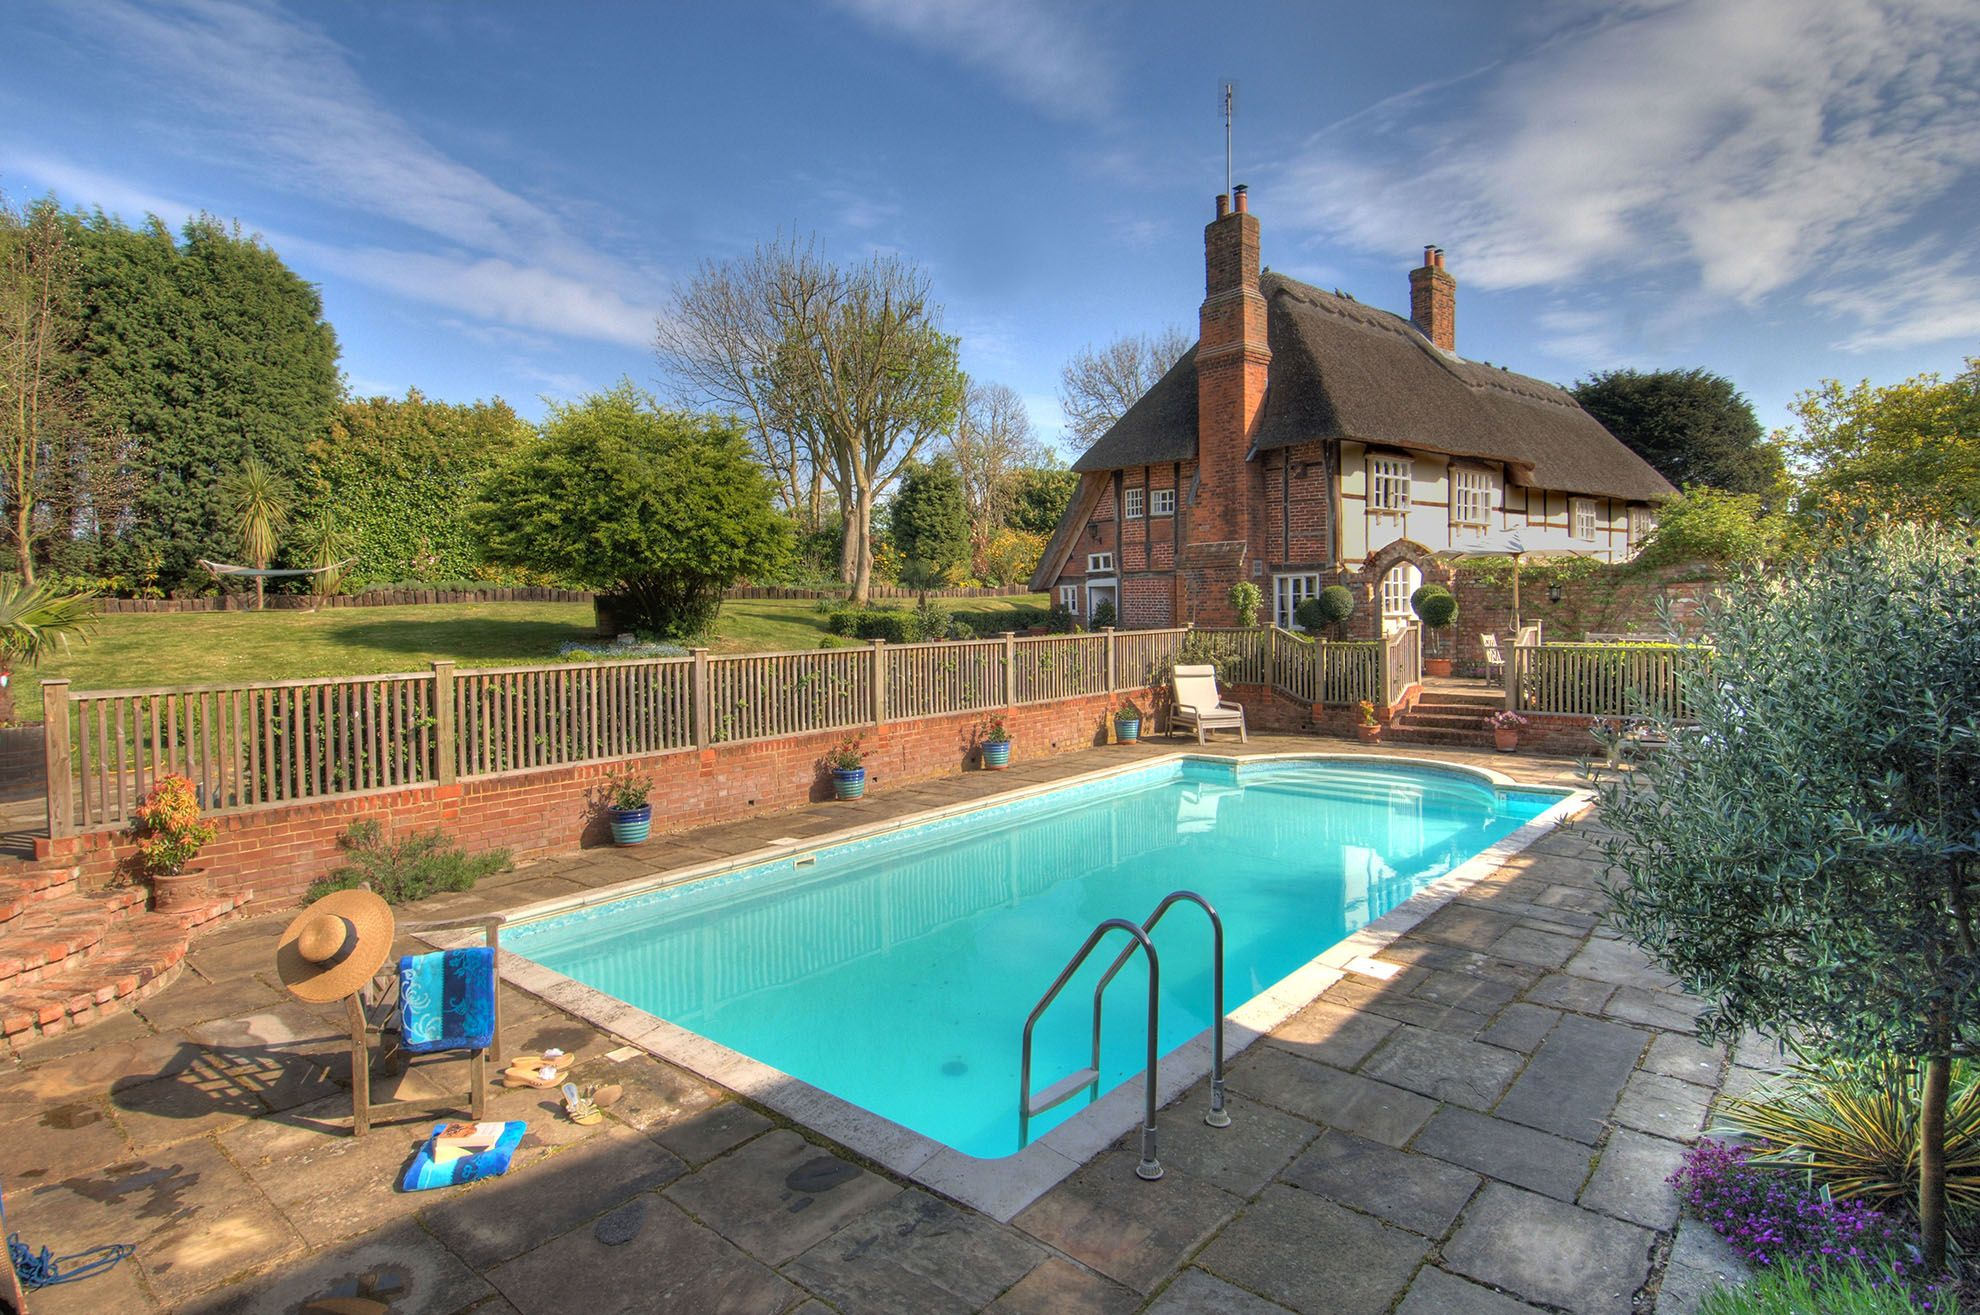 Take a dip in the fabulously warm swimming pool surrounded by a paved patio